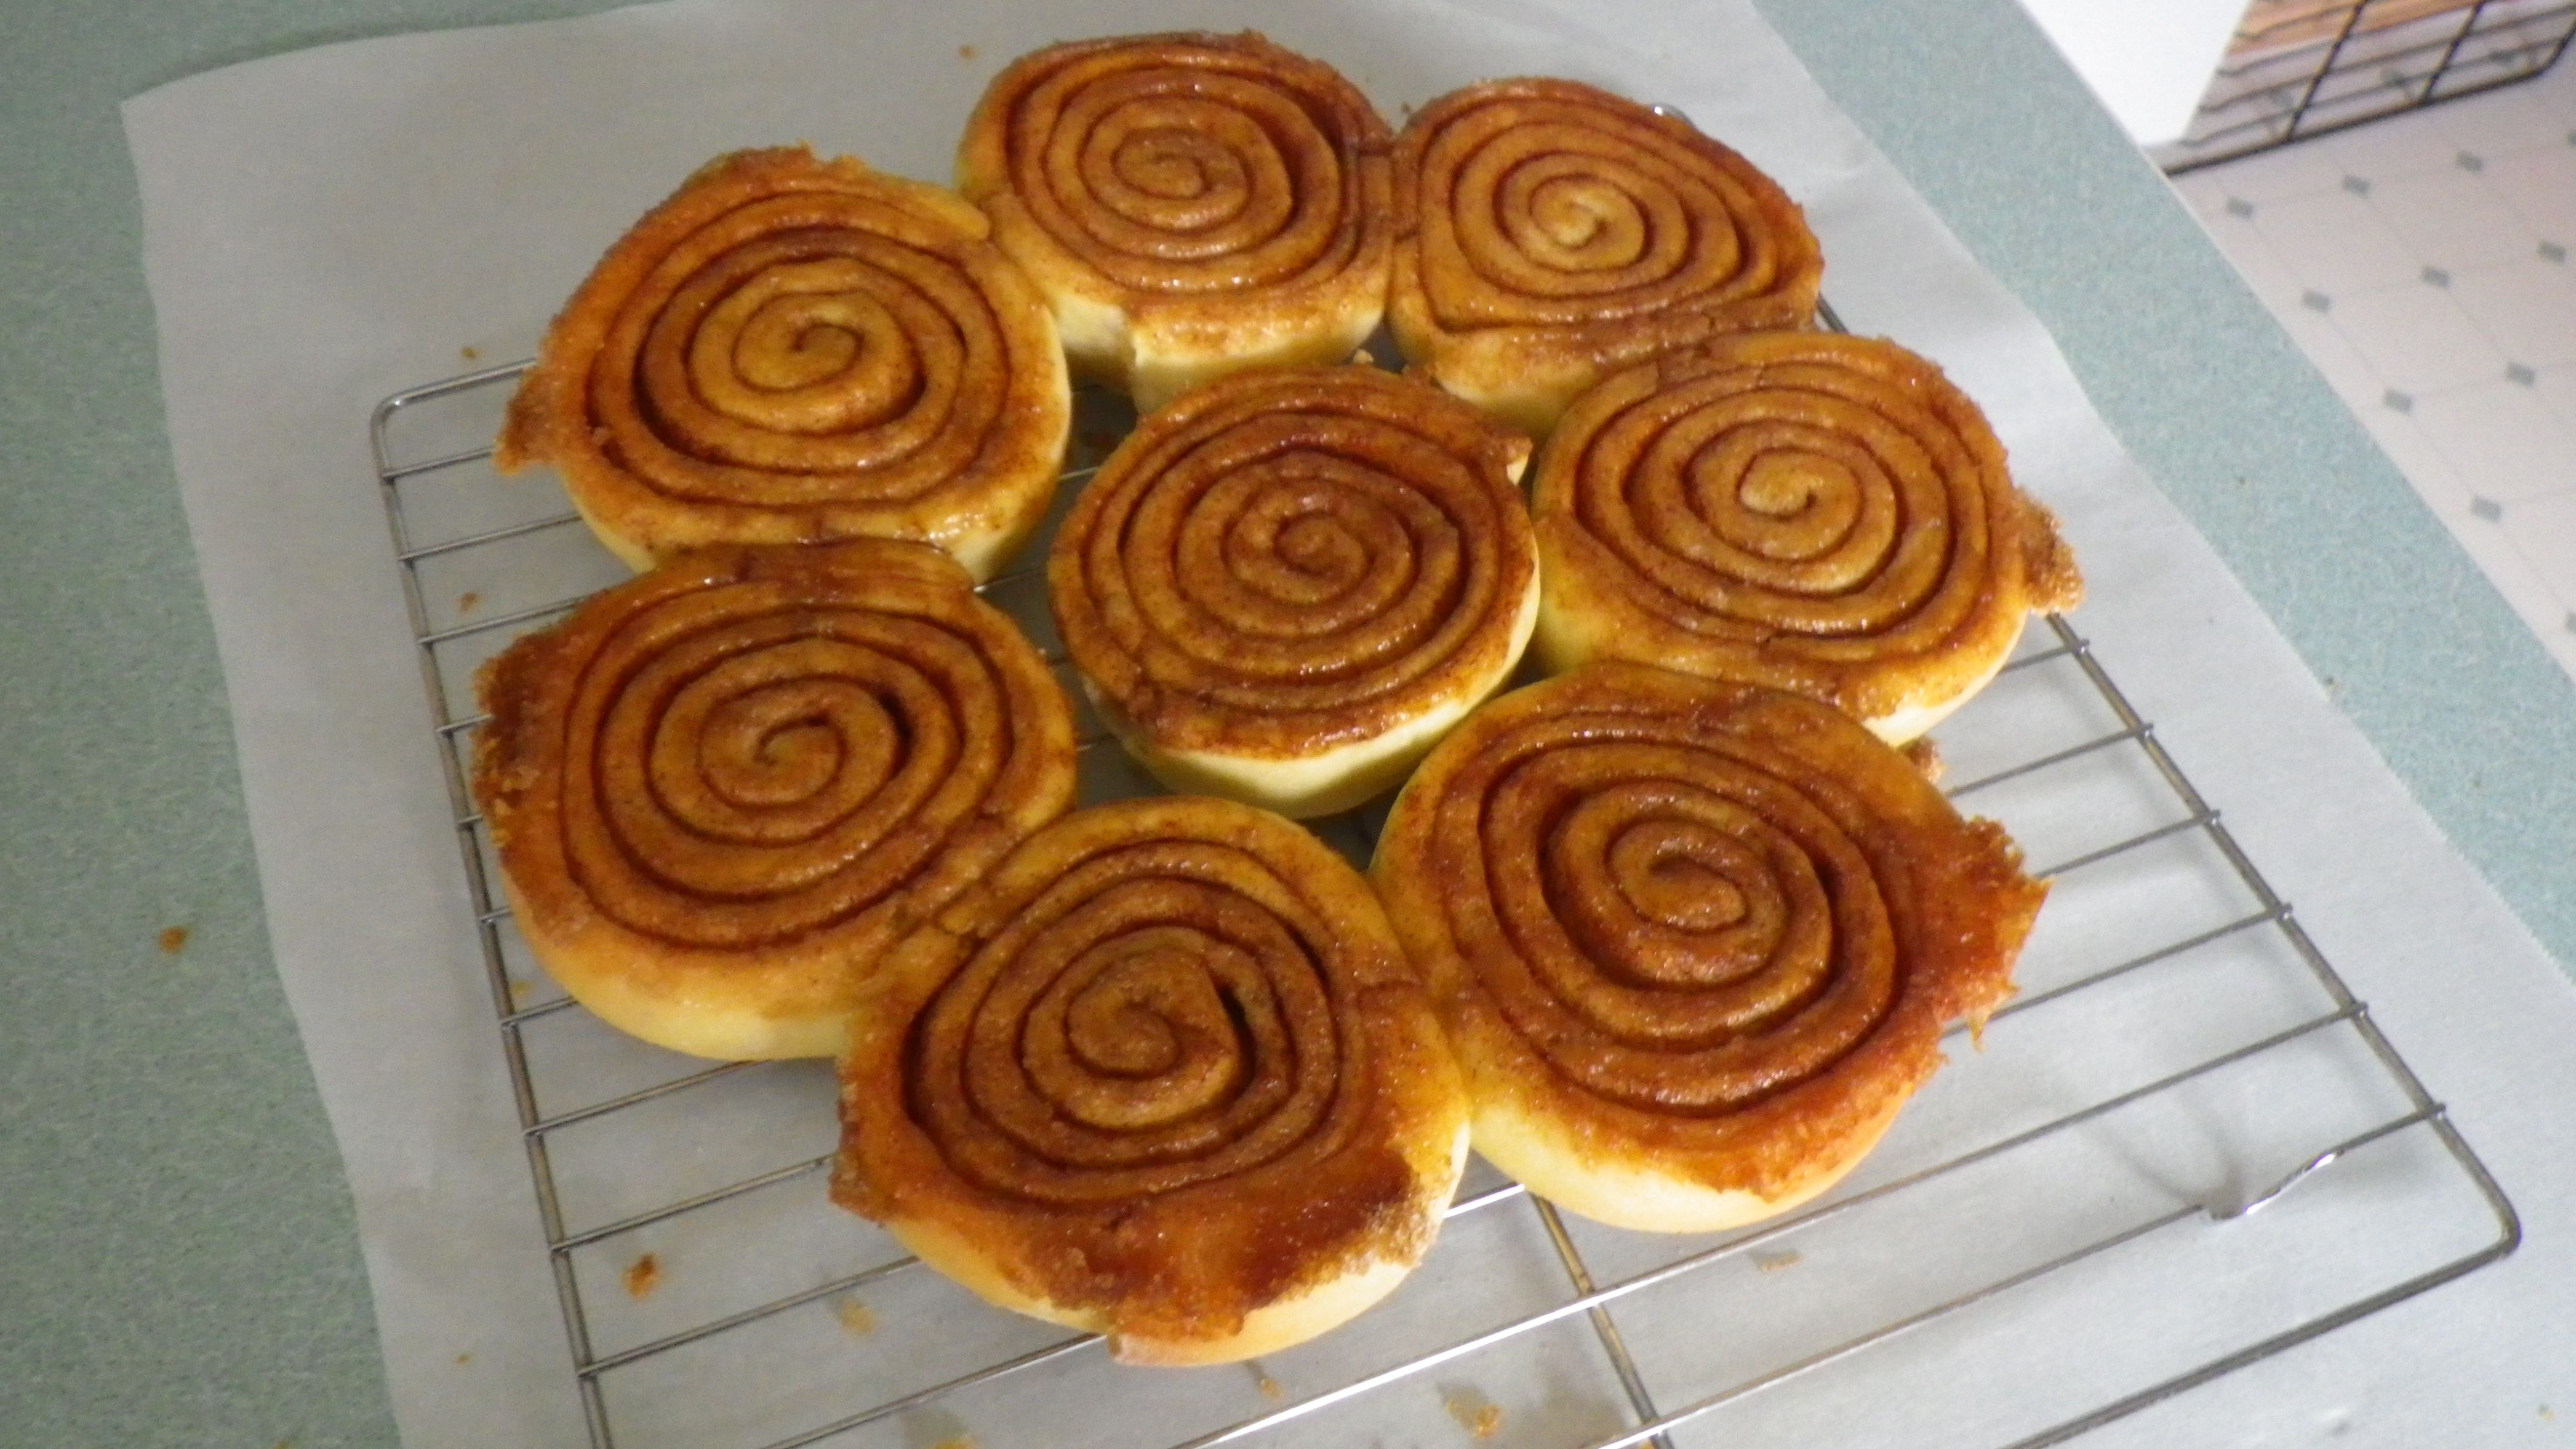 Fresh cinnamon bus straight from the oven